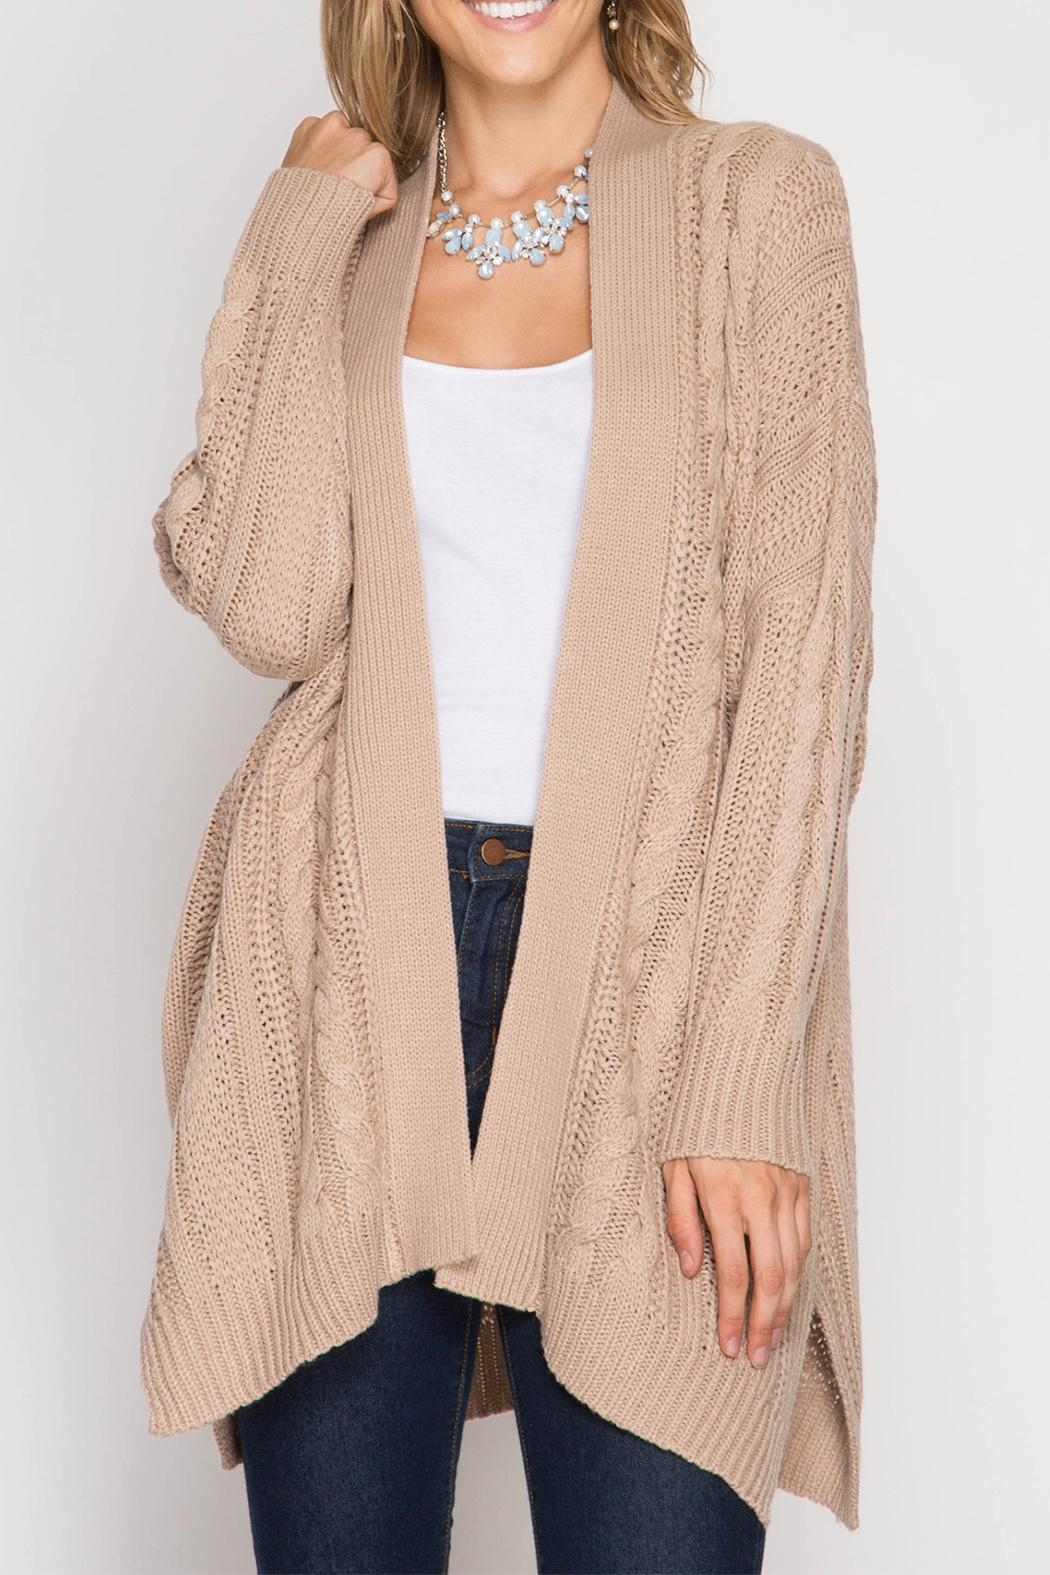 She + Sky Beige Cozy Knit Cardigan - Front Cropped Image